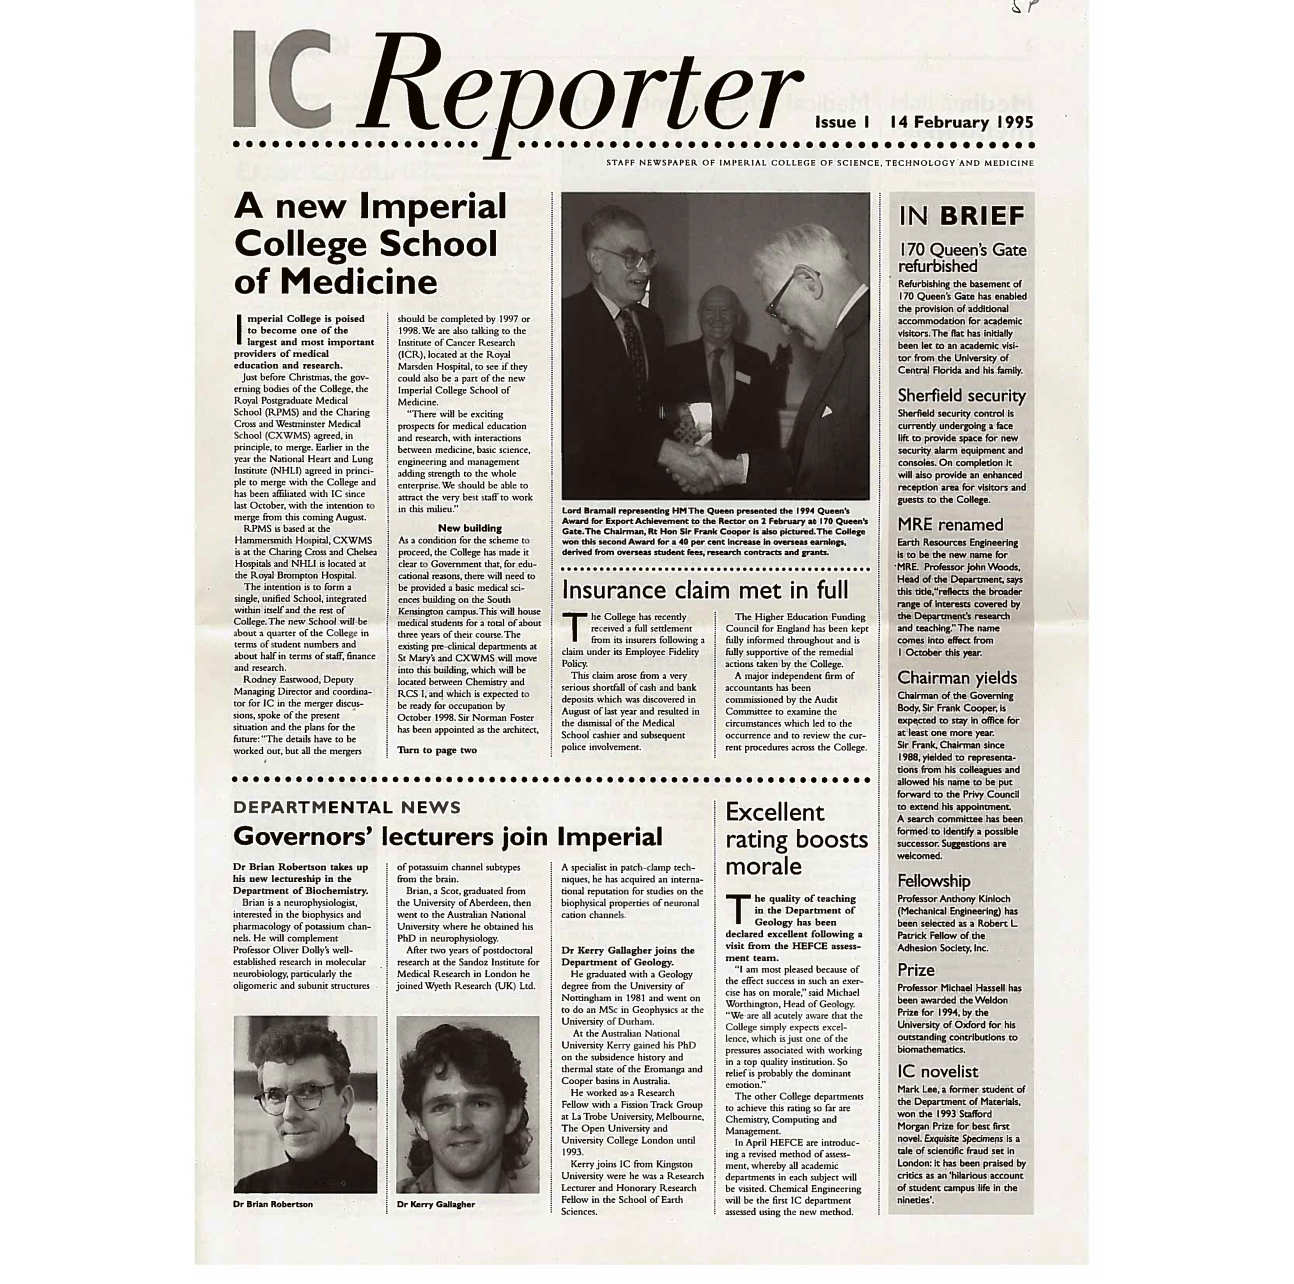 Issue 1, 14 February 1995